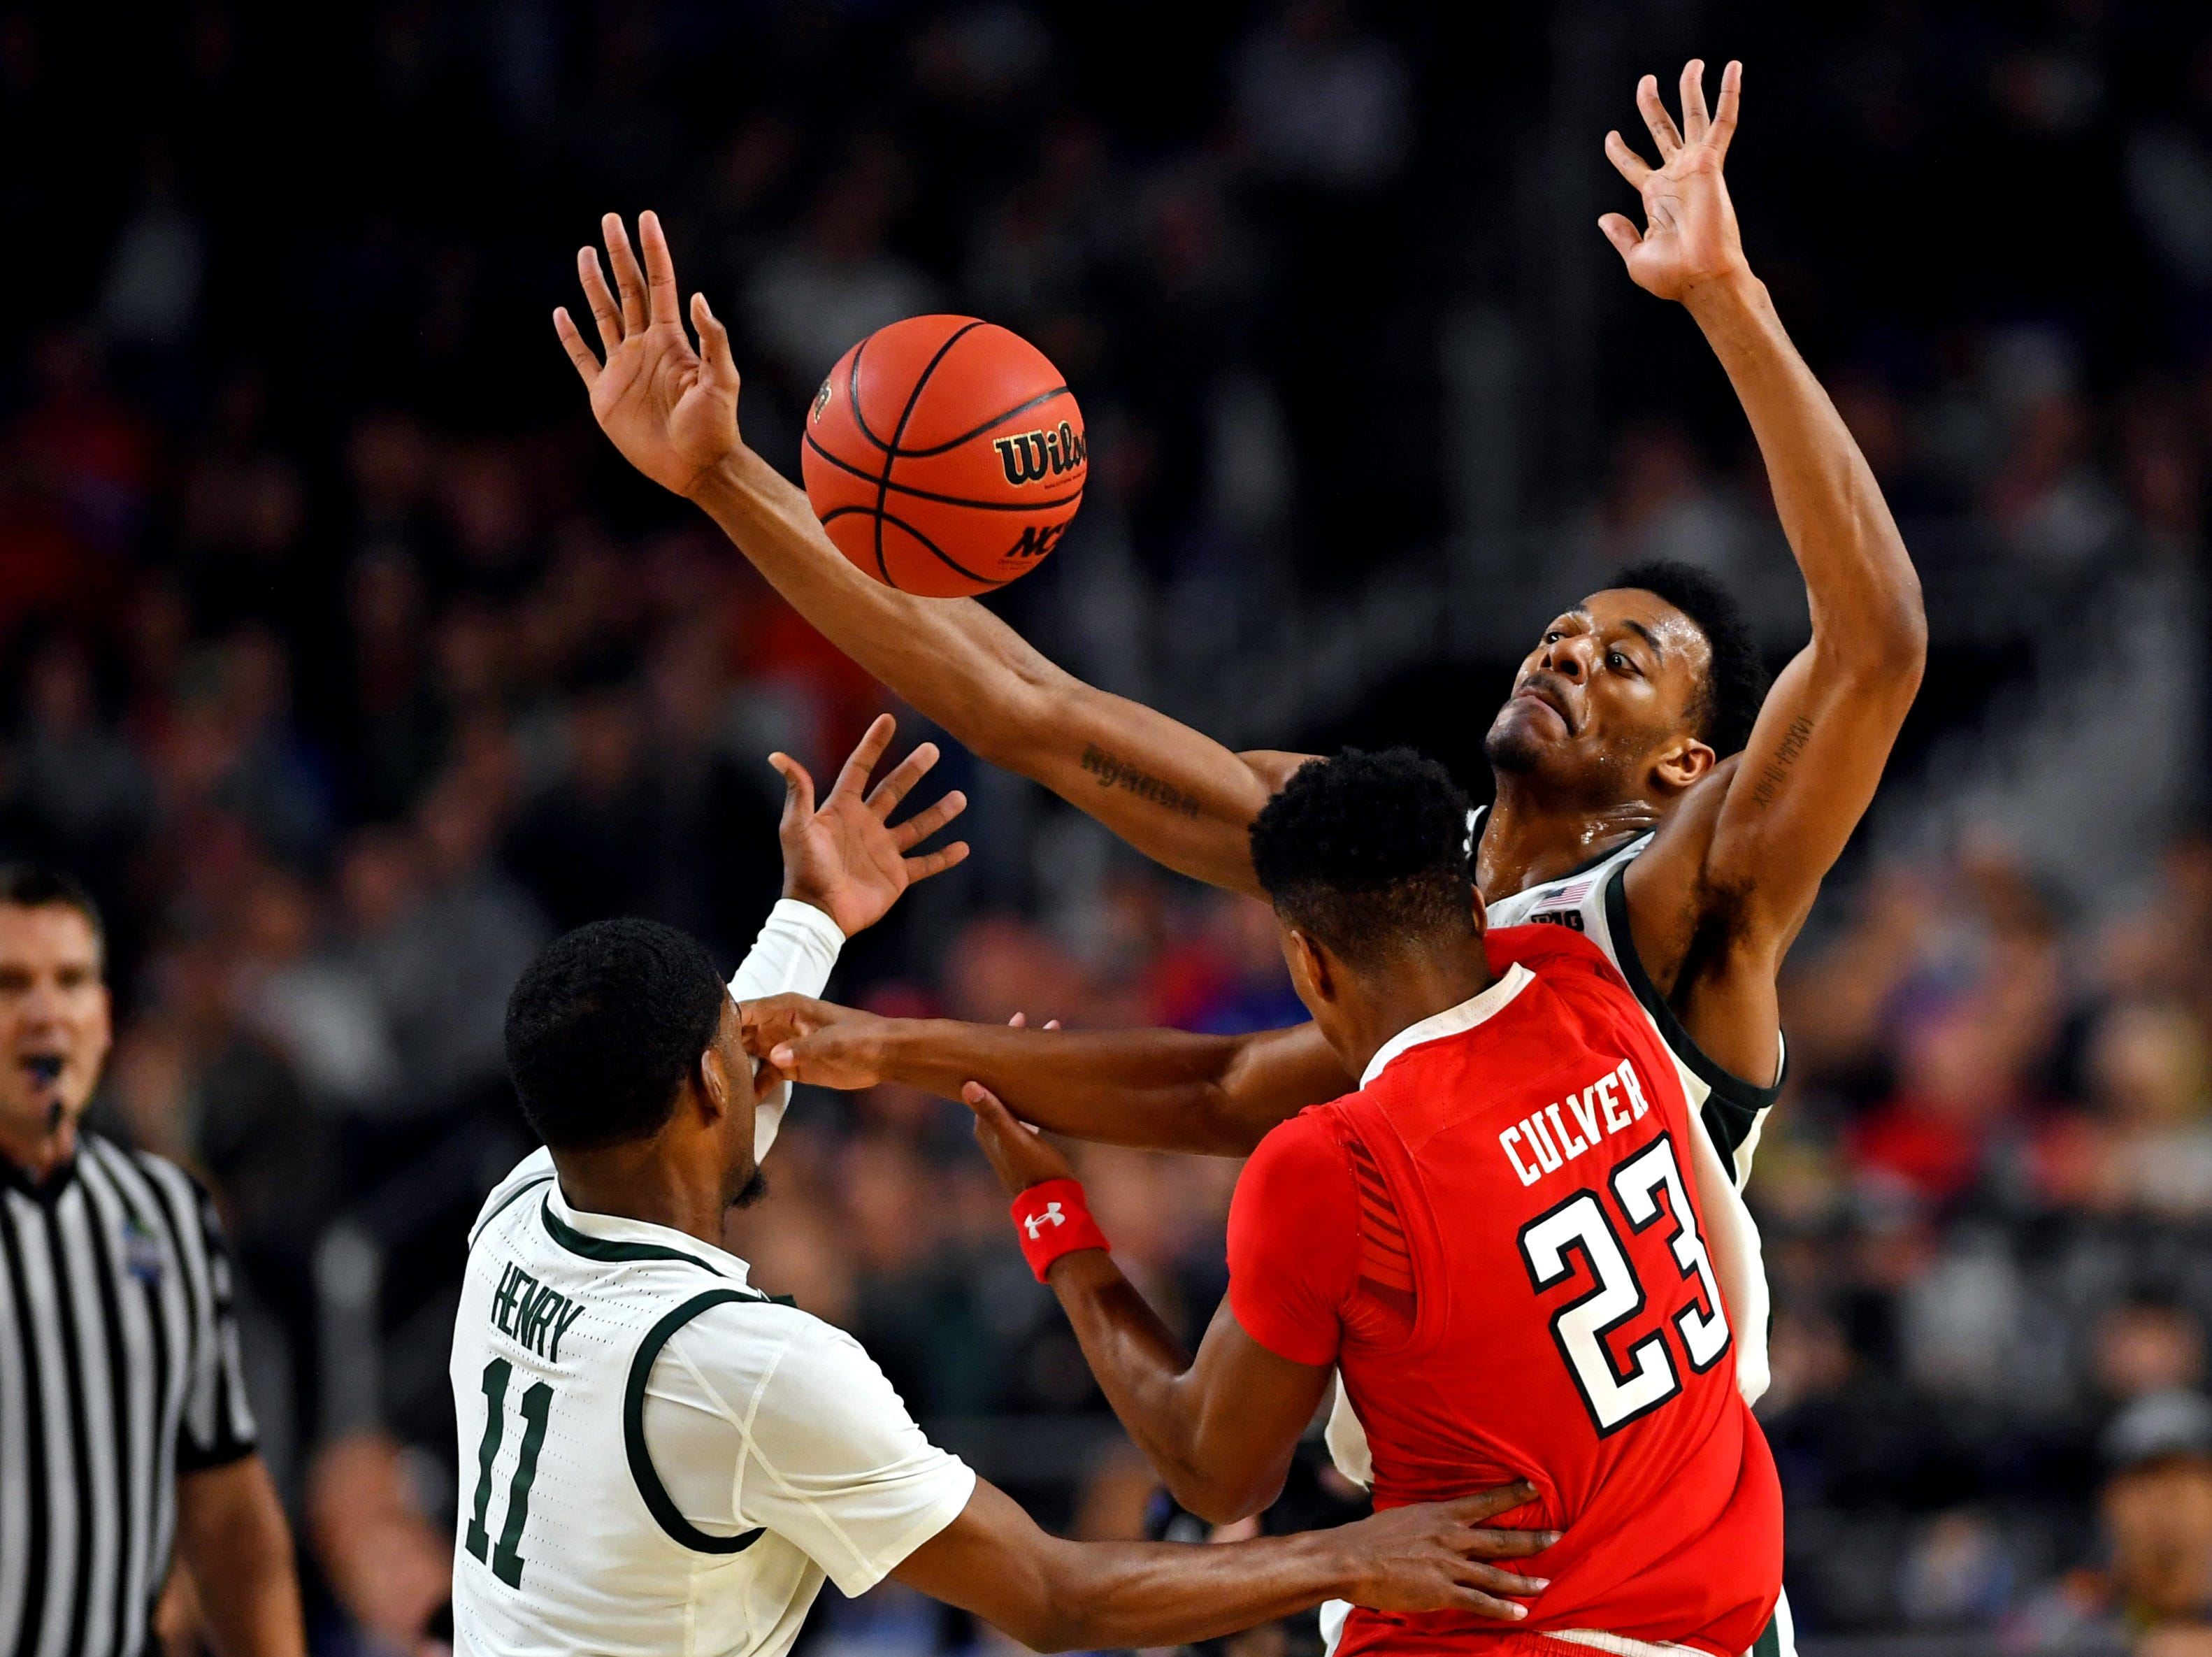 Texas Tech Red Raiders guard Jarrett Culver (23) drives to the basket against the Michigan State Spartans.